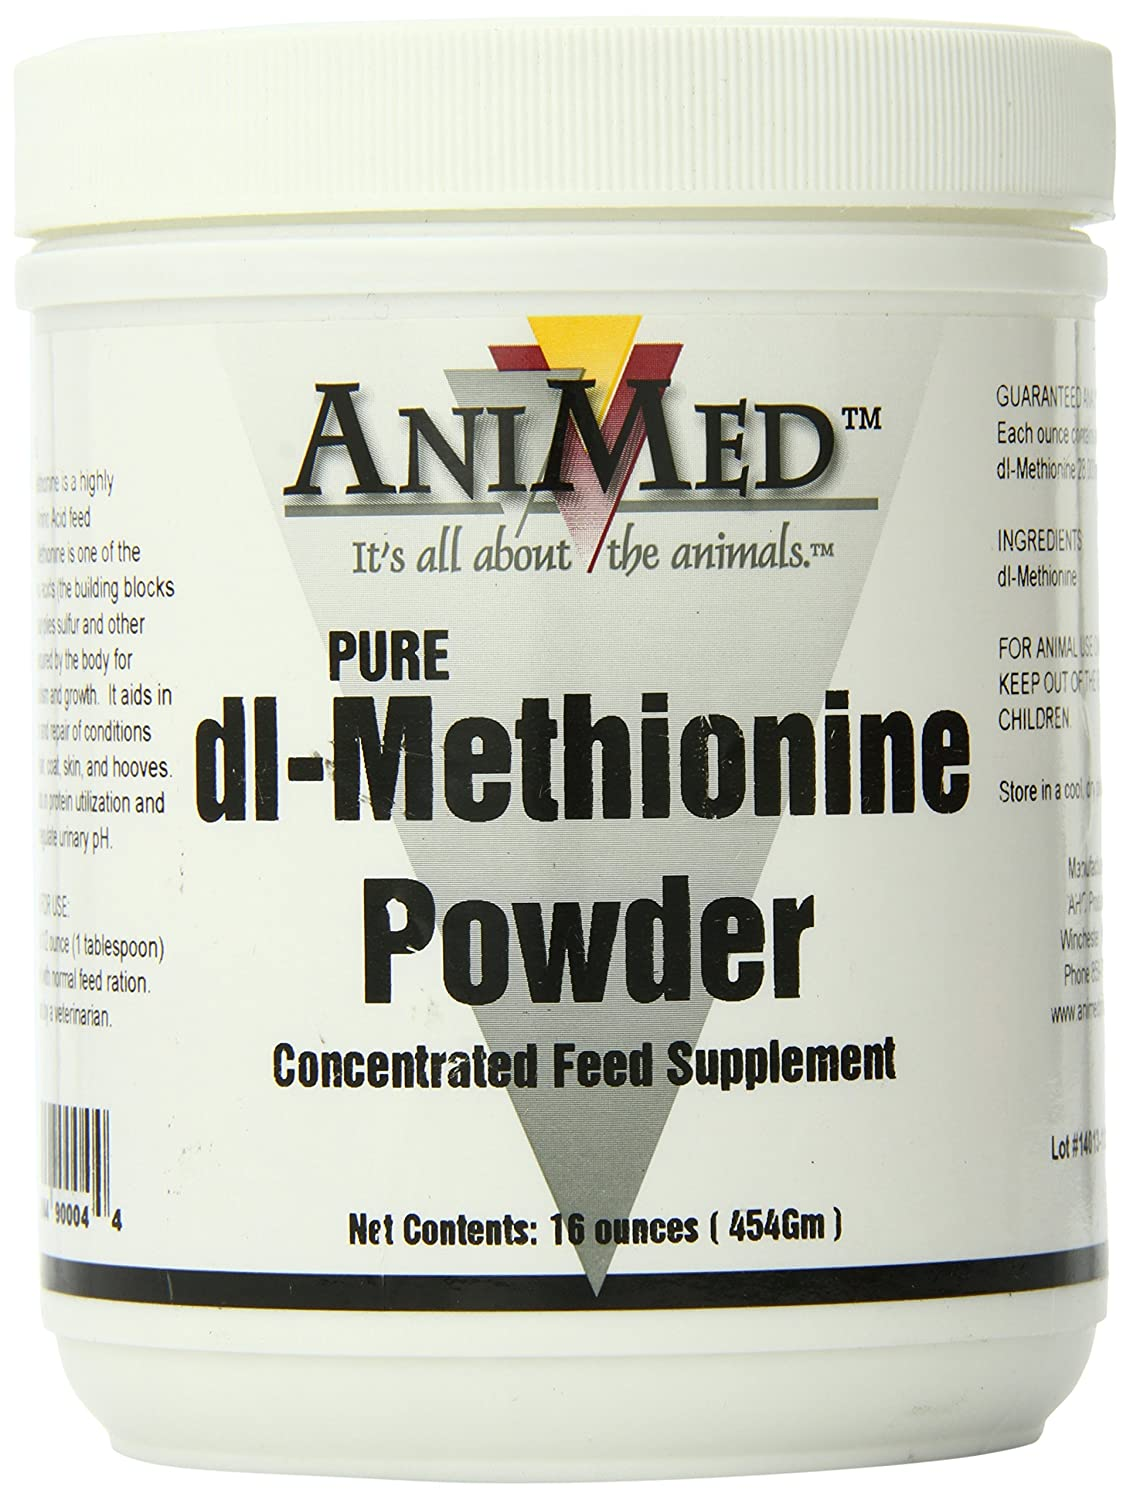 AniMed Dl-Methionine Pure for Horses, 16Oz 053-90004